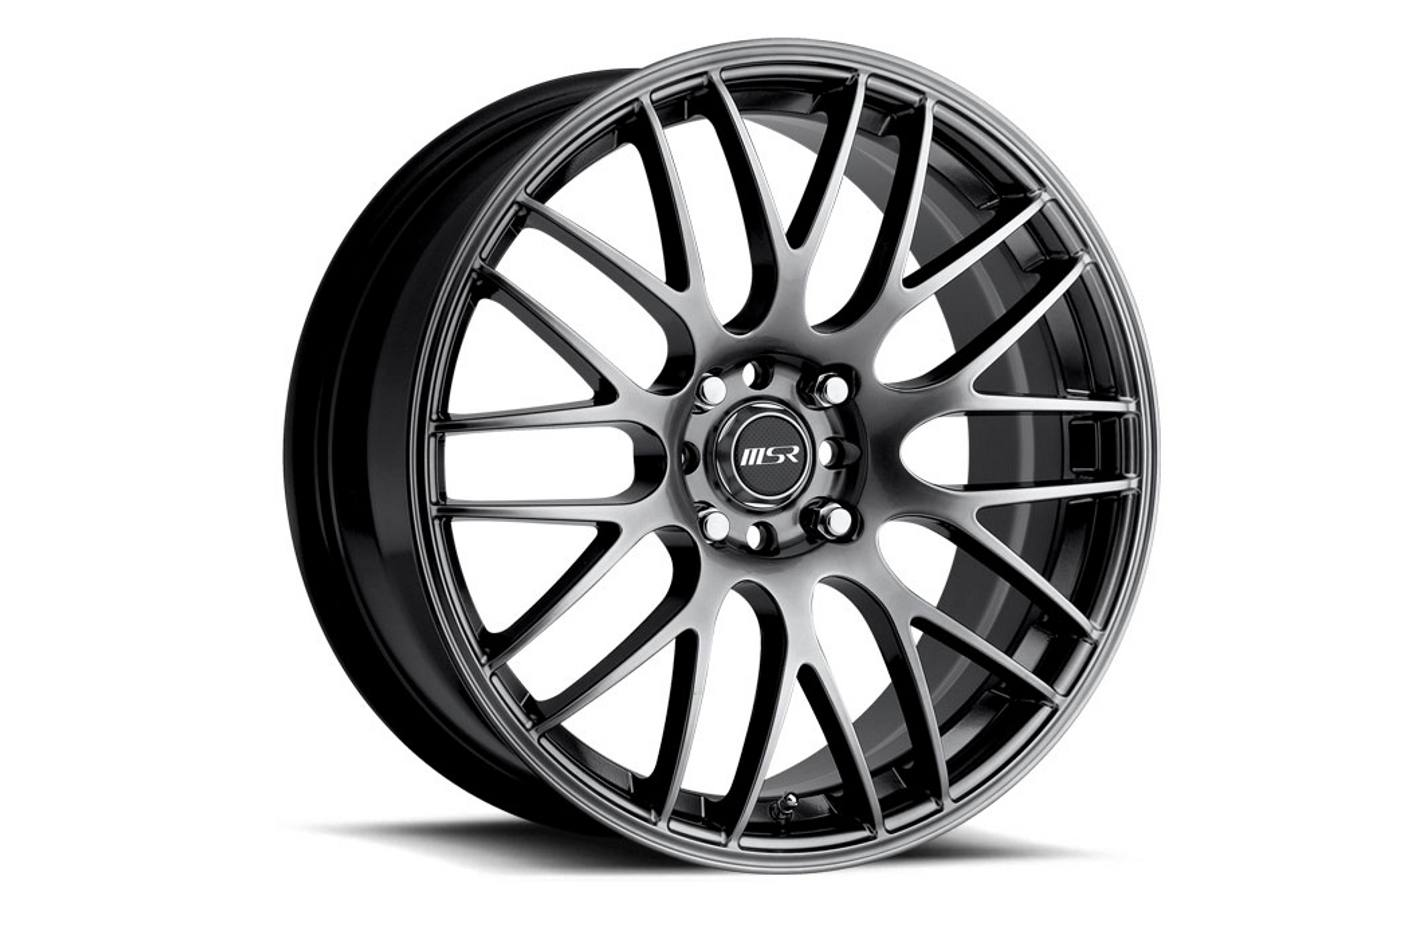 MSR Wheels Style 045 Wheels for sale | Rossi Bros  Tire and